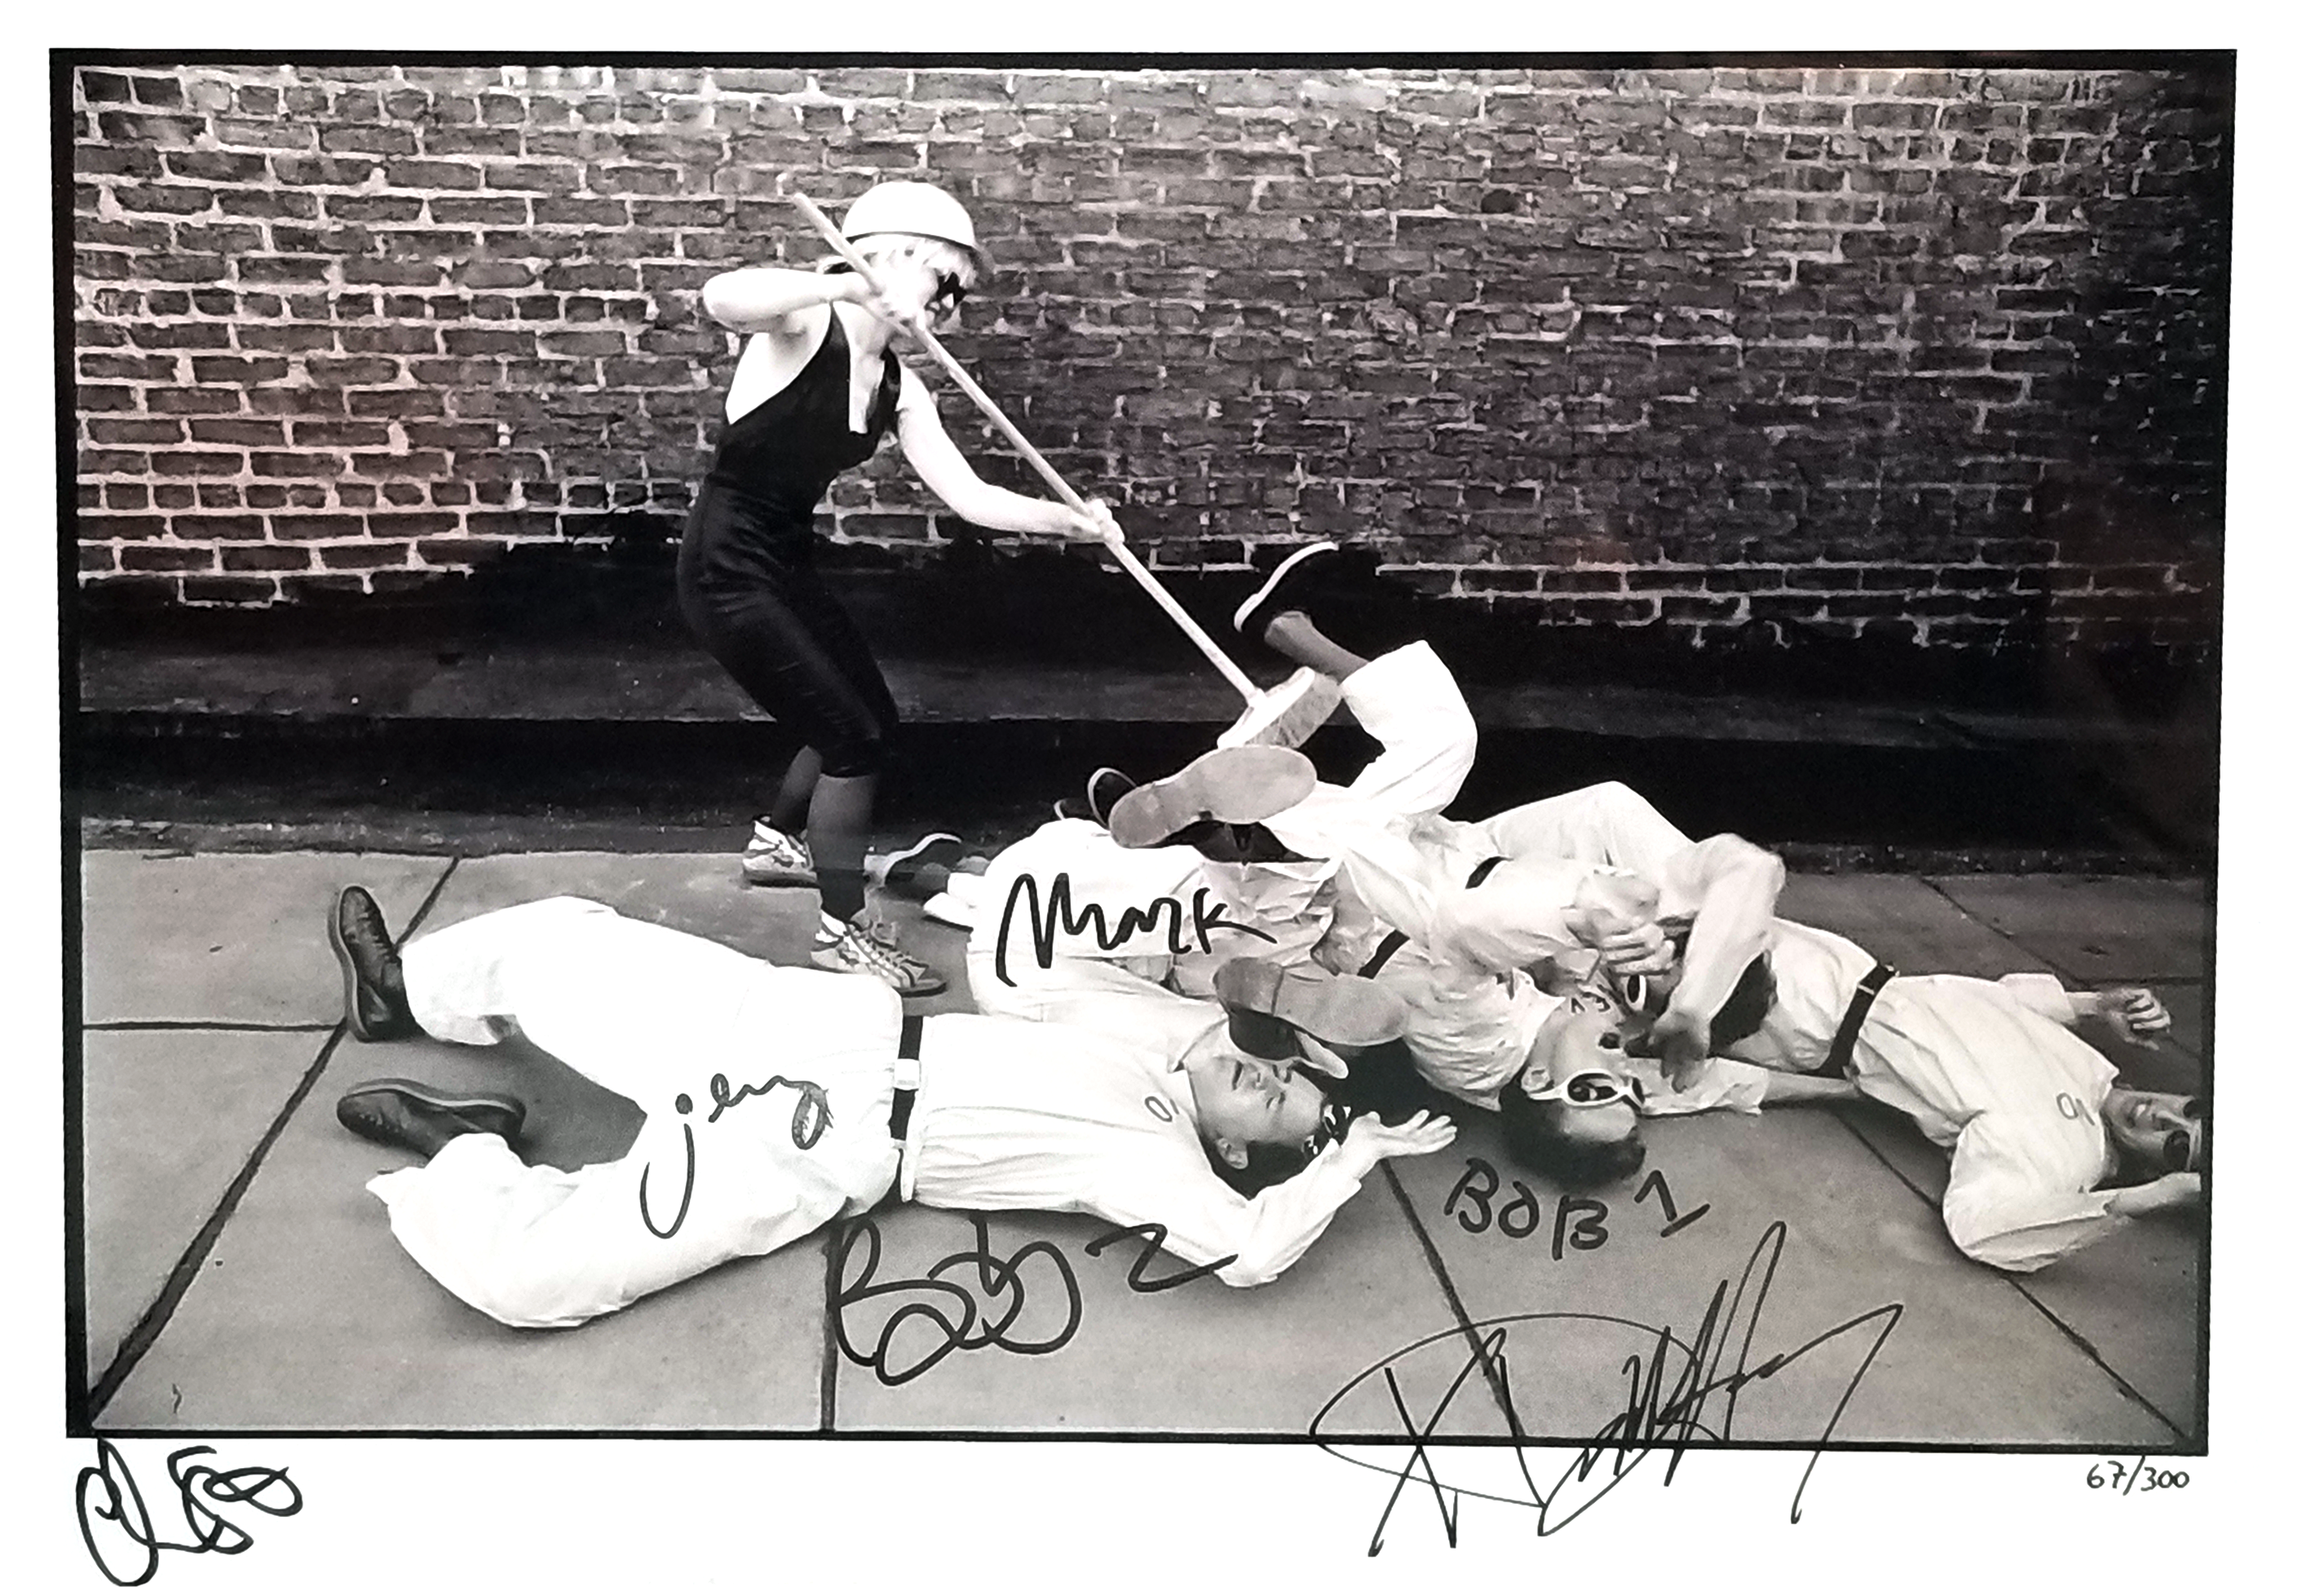 BLONDIE/DEVO AUTOGRAPHED PHOTO - BlondieUS